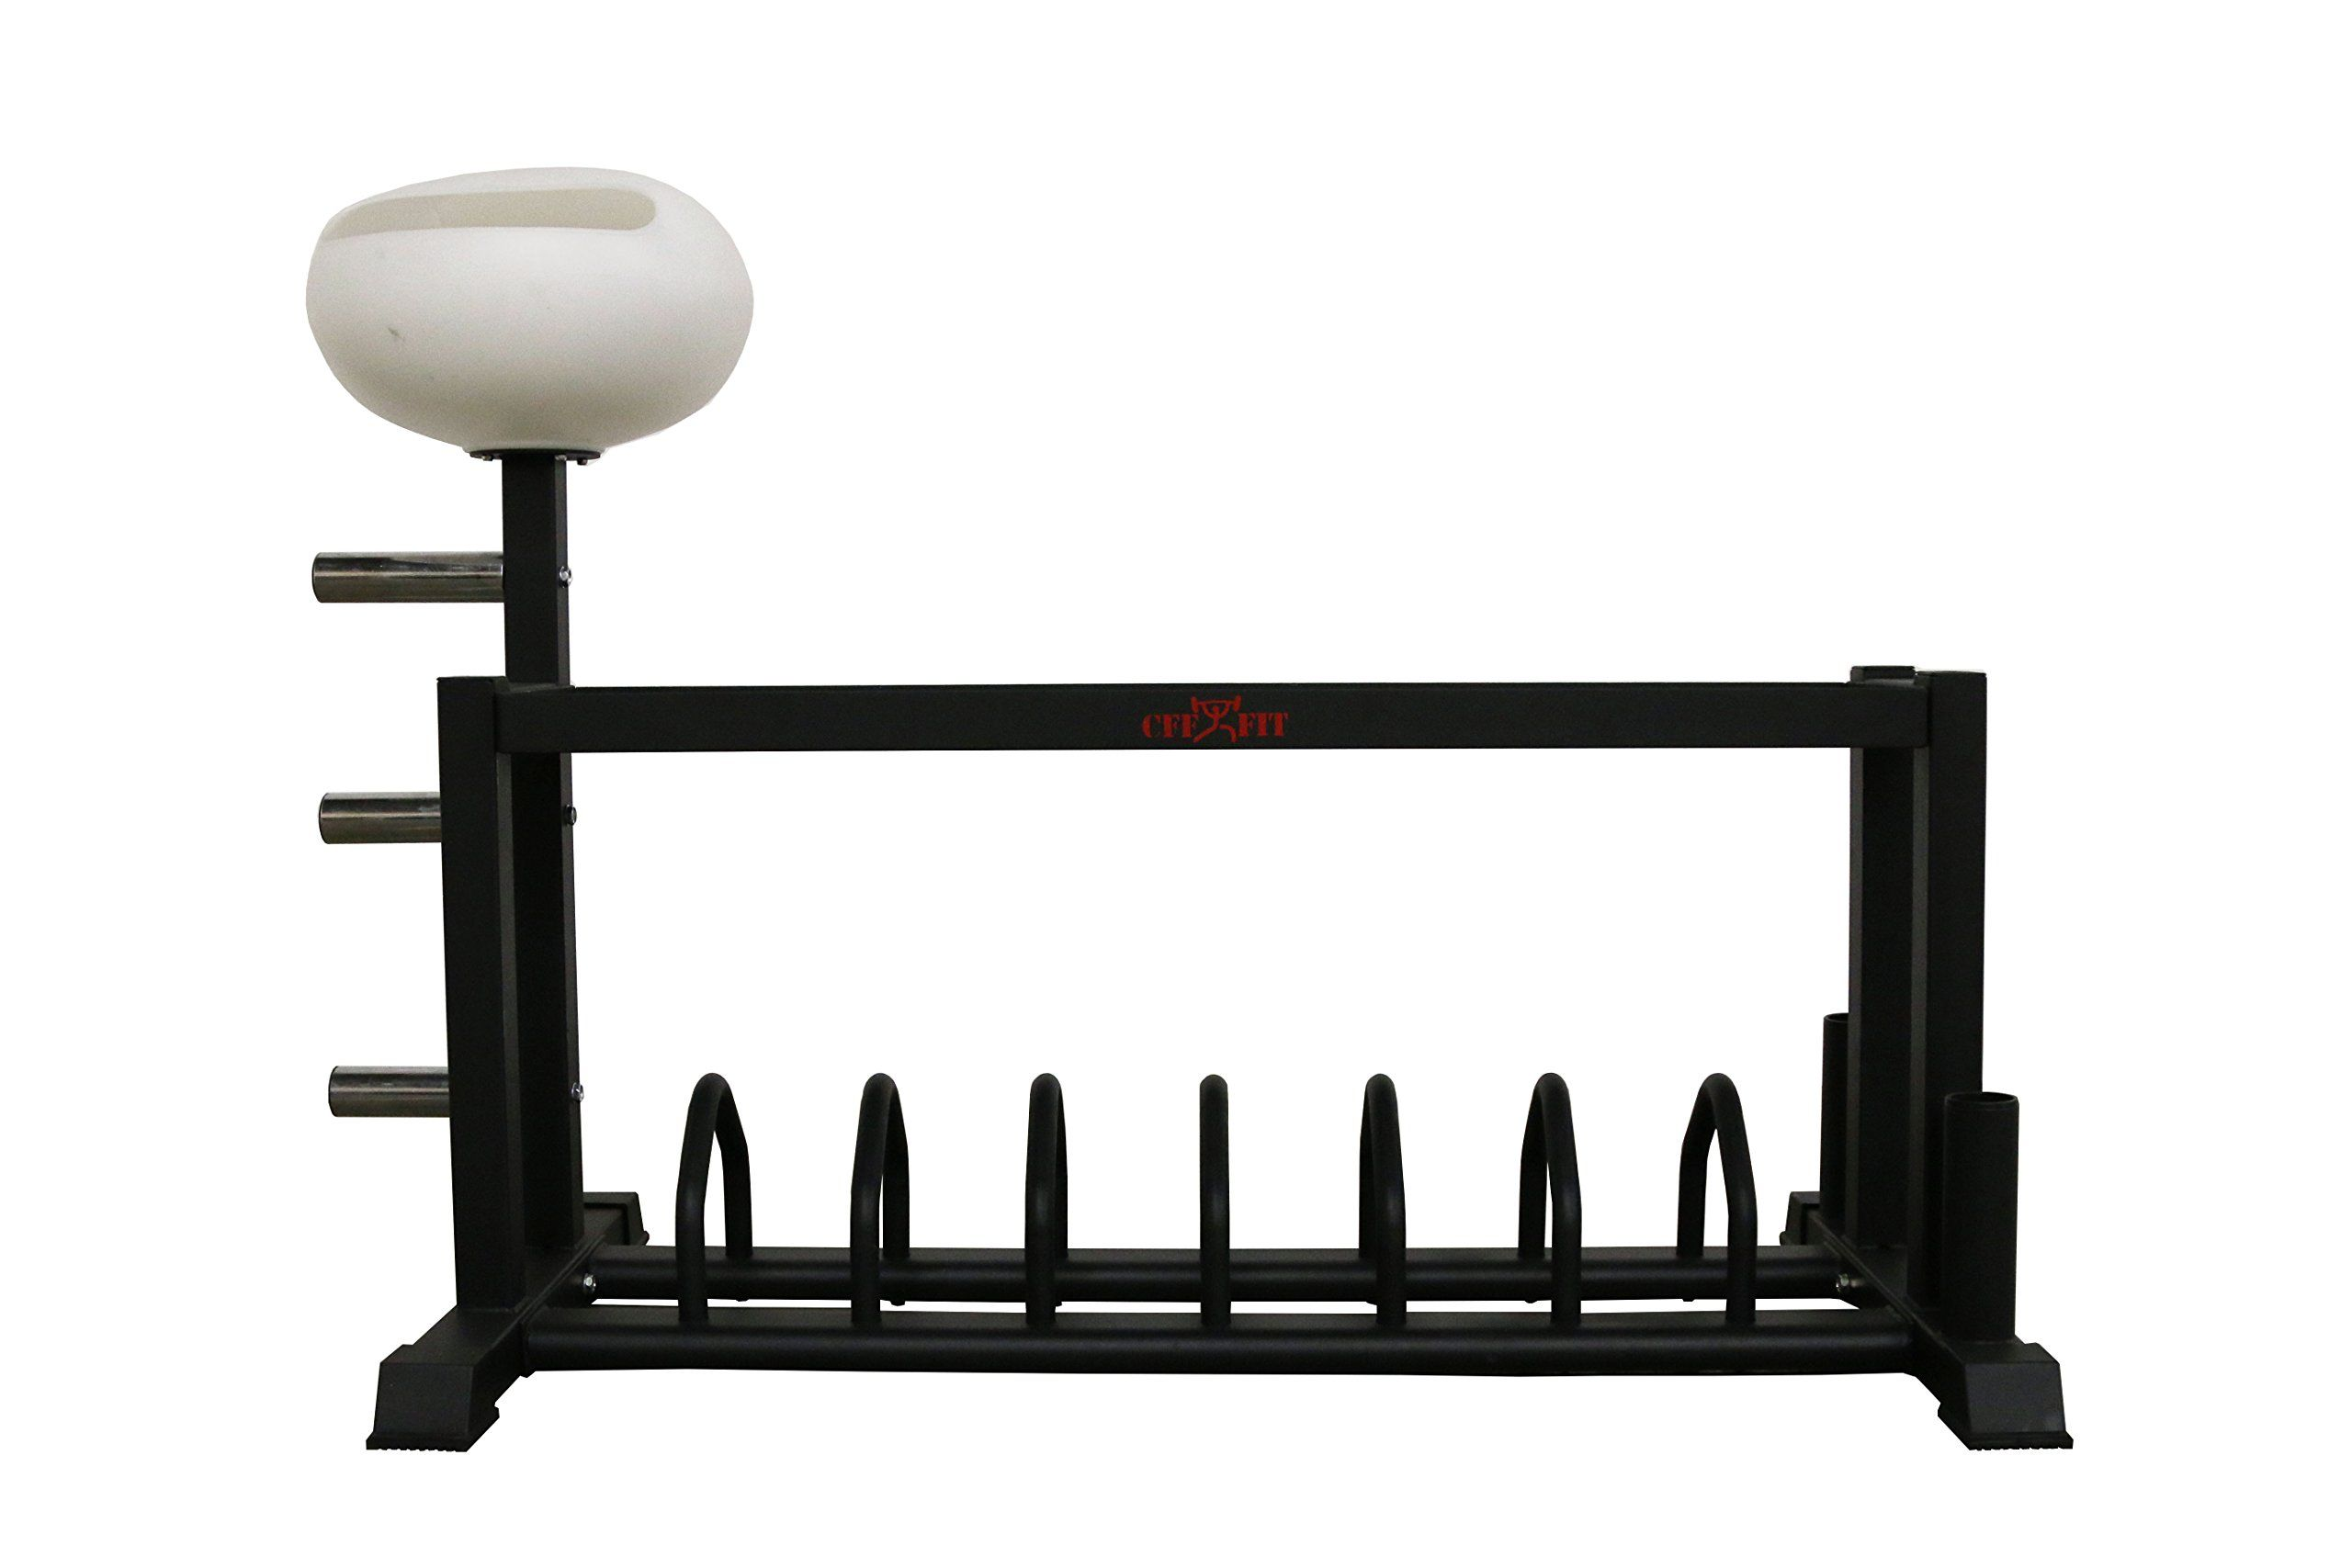 com manufacturer dp amazon from organizer the marcy dumbbell rack tier weight storage multilevel